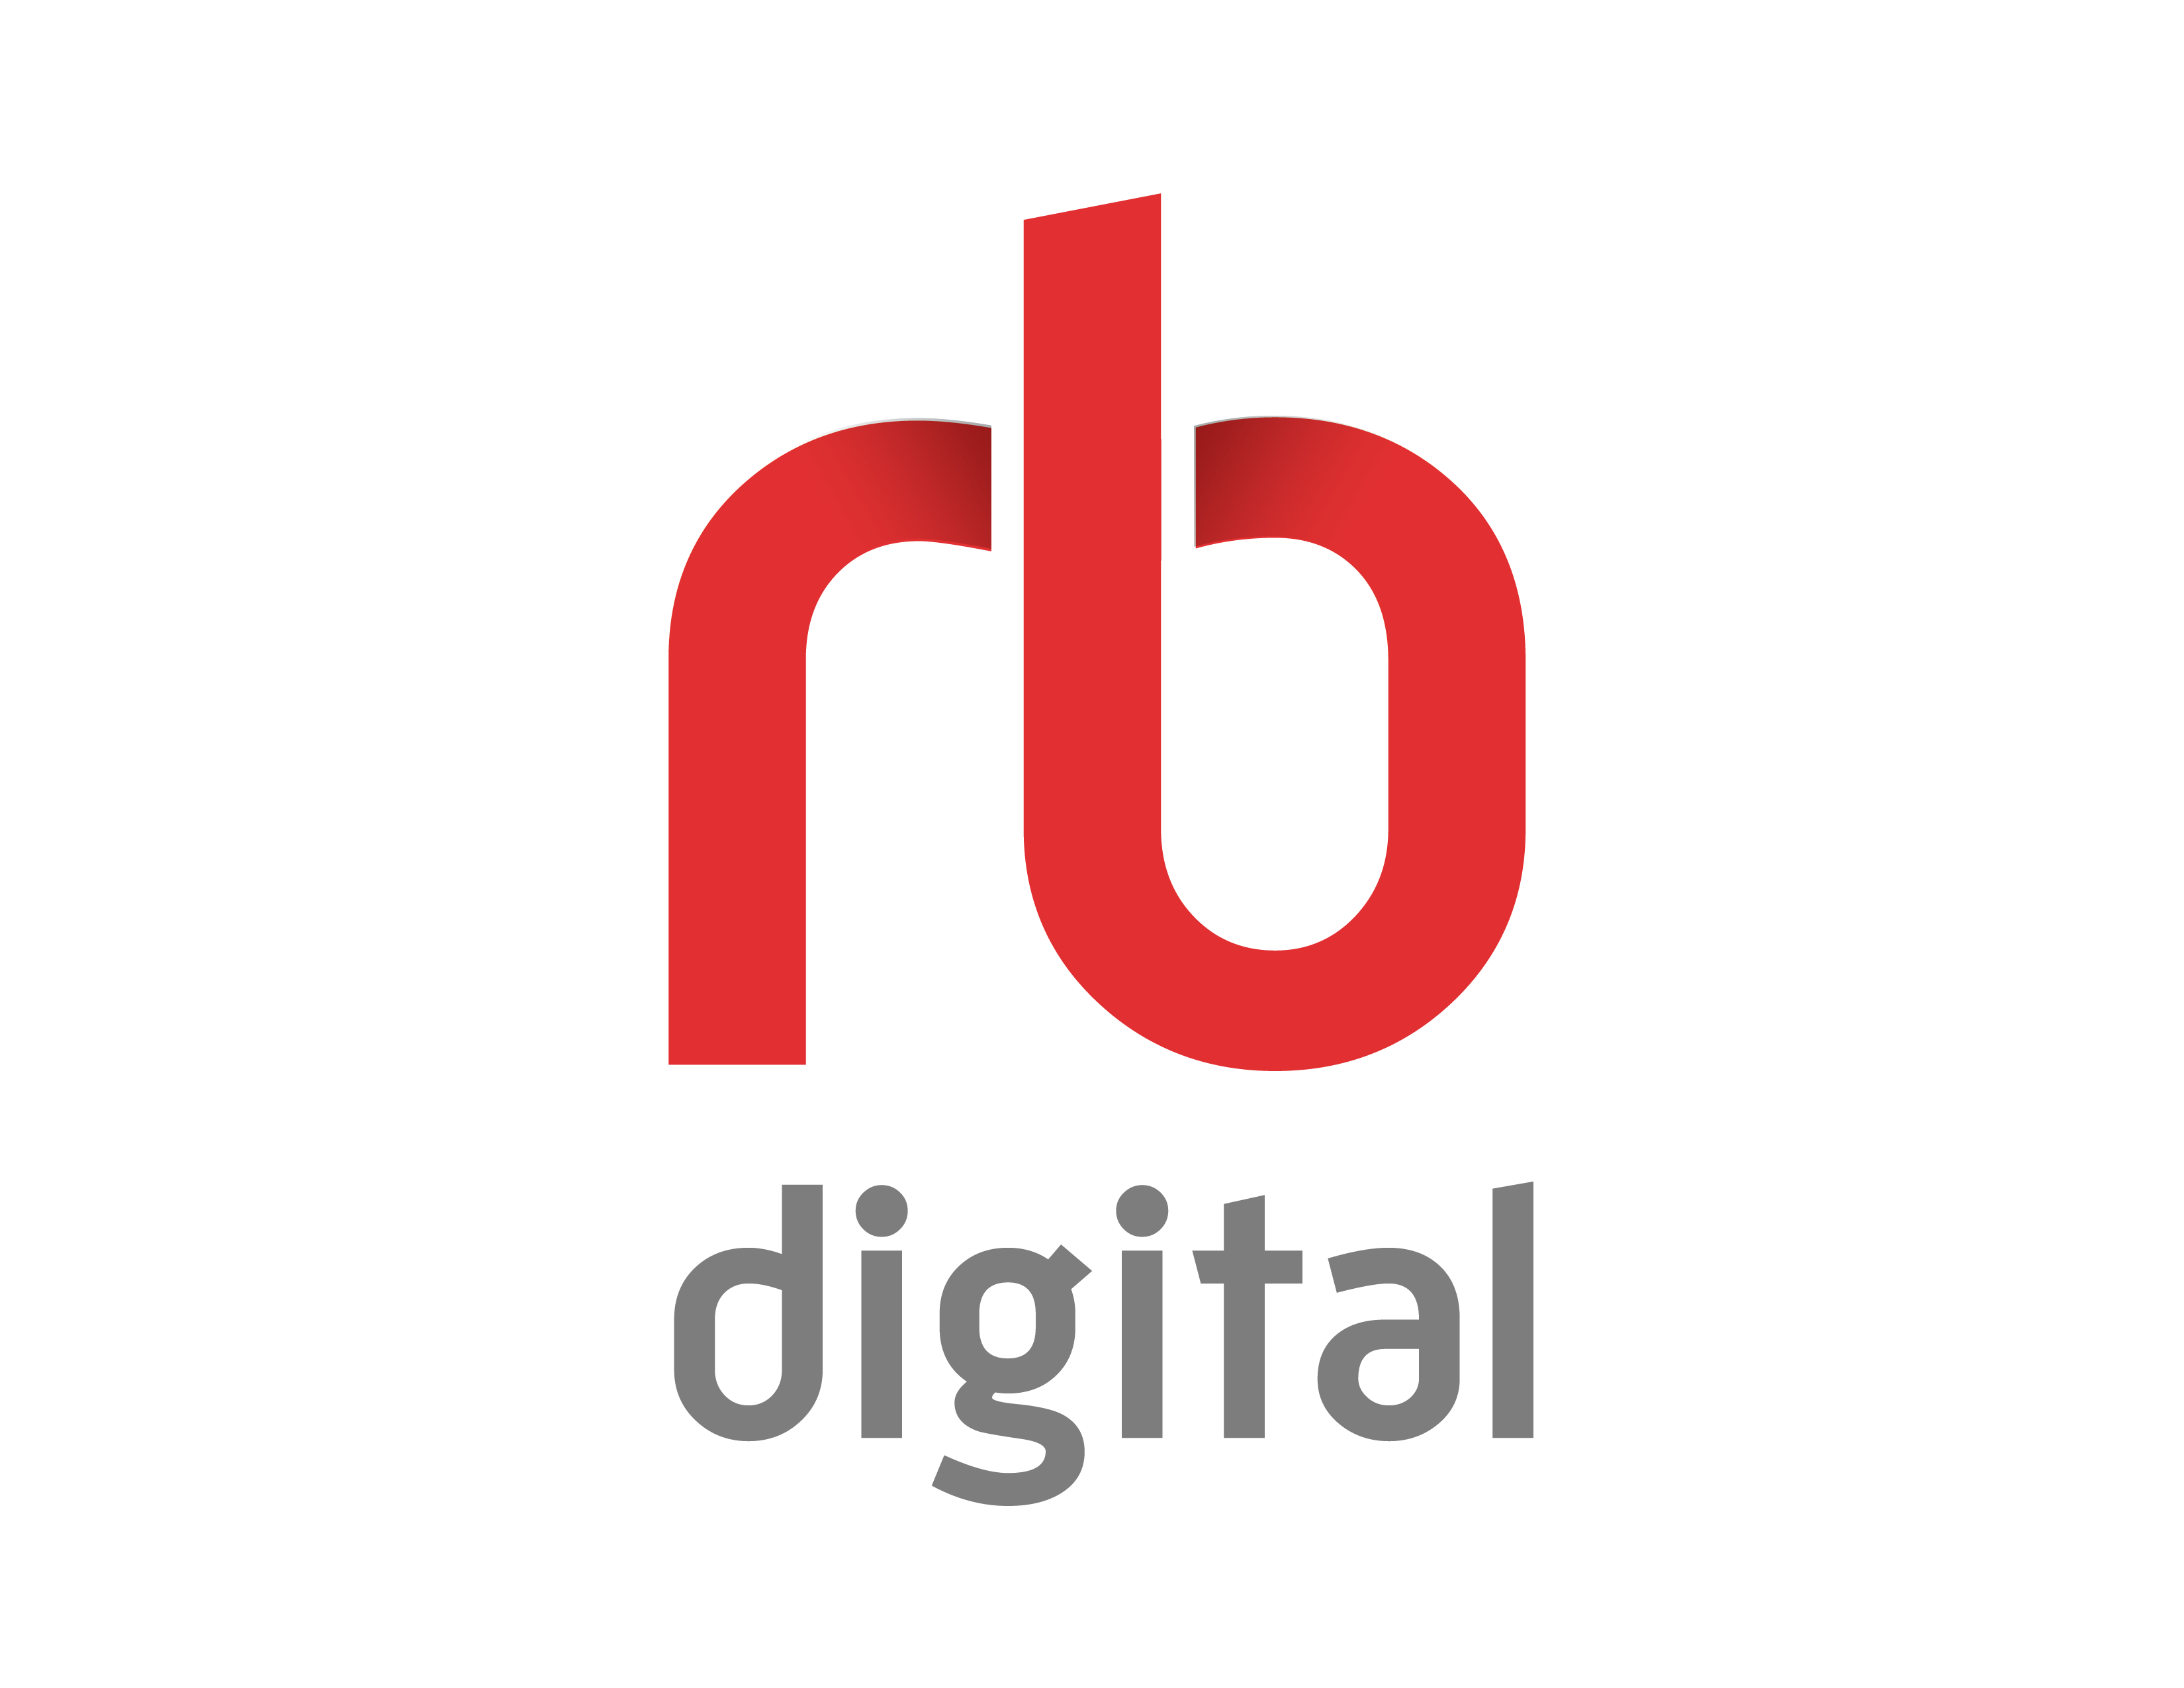 logo RBdigital vertical